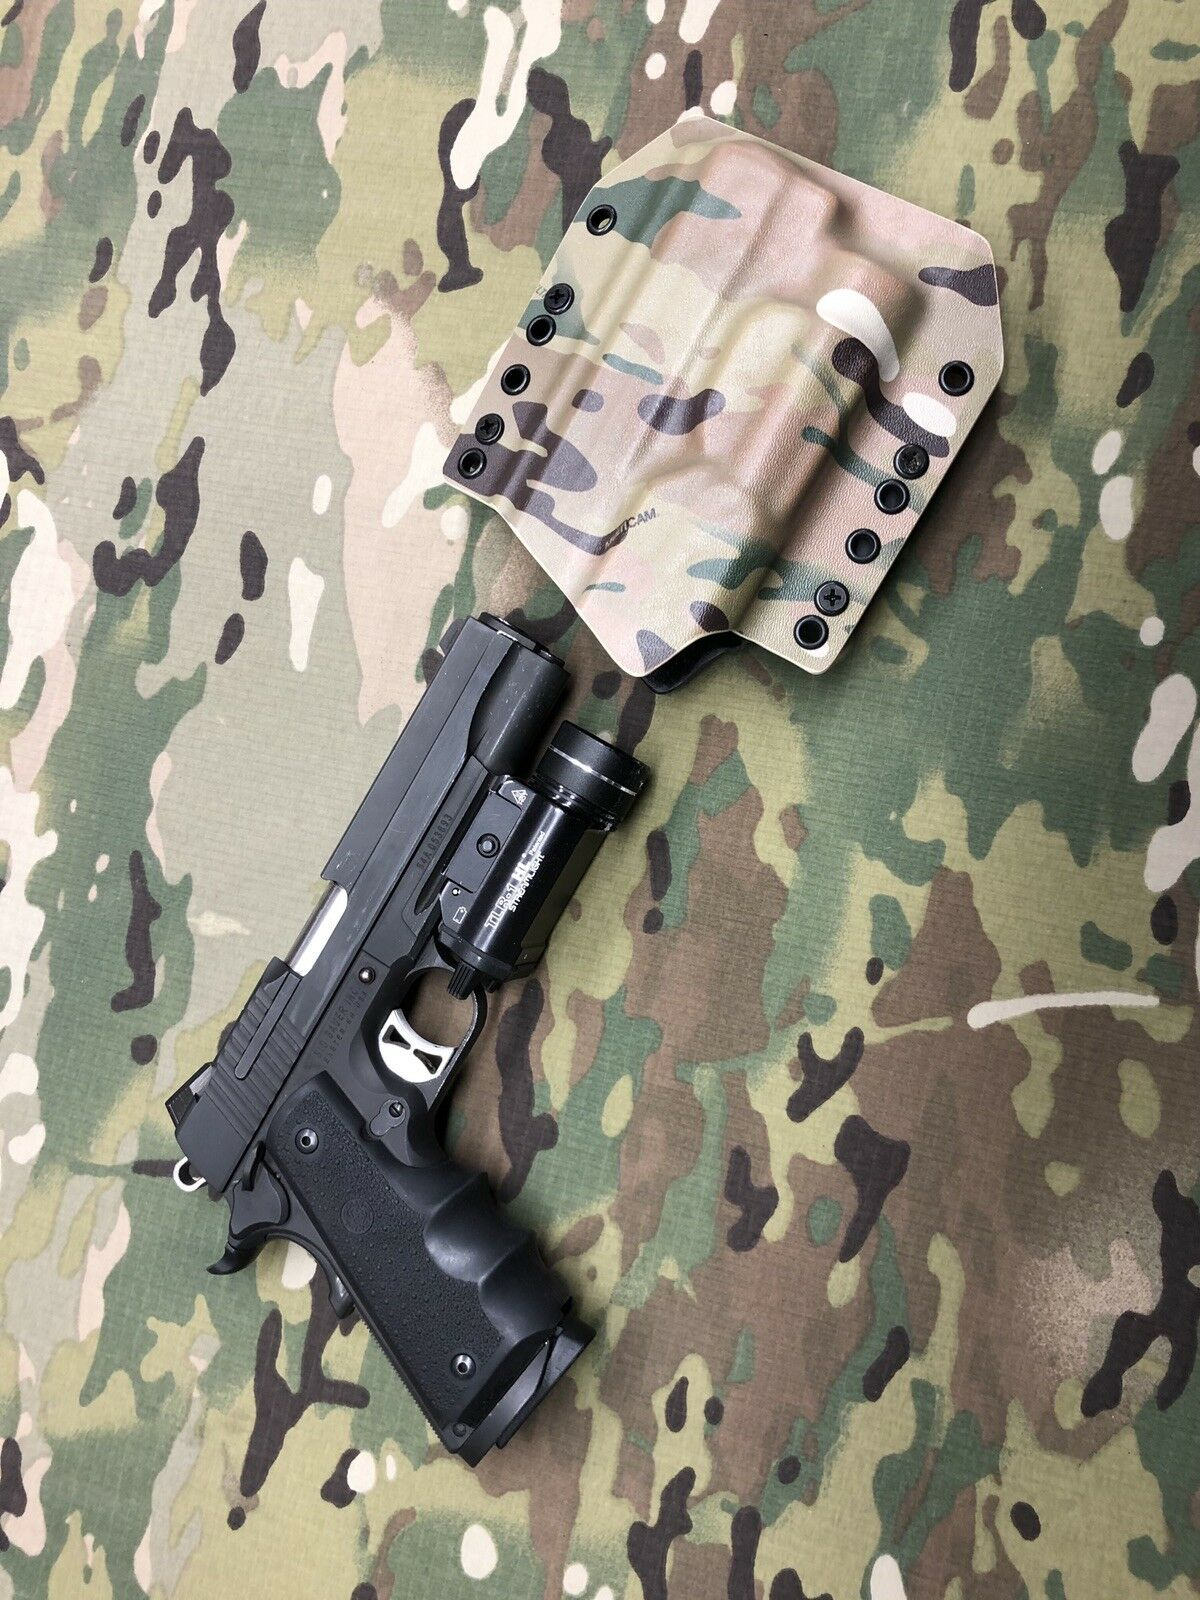 Multicam Infused Kydex SIG Holster for SIG Kydex Square Slide 5